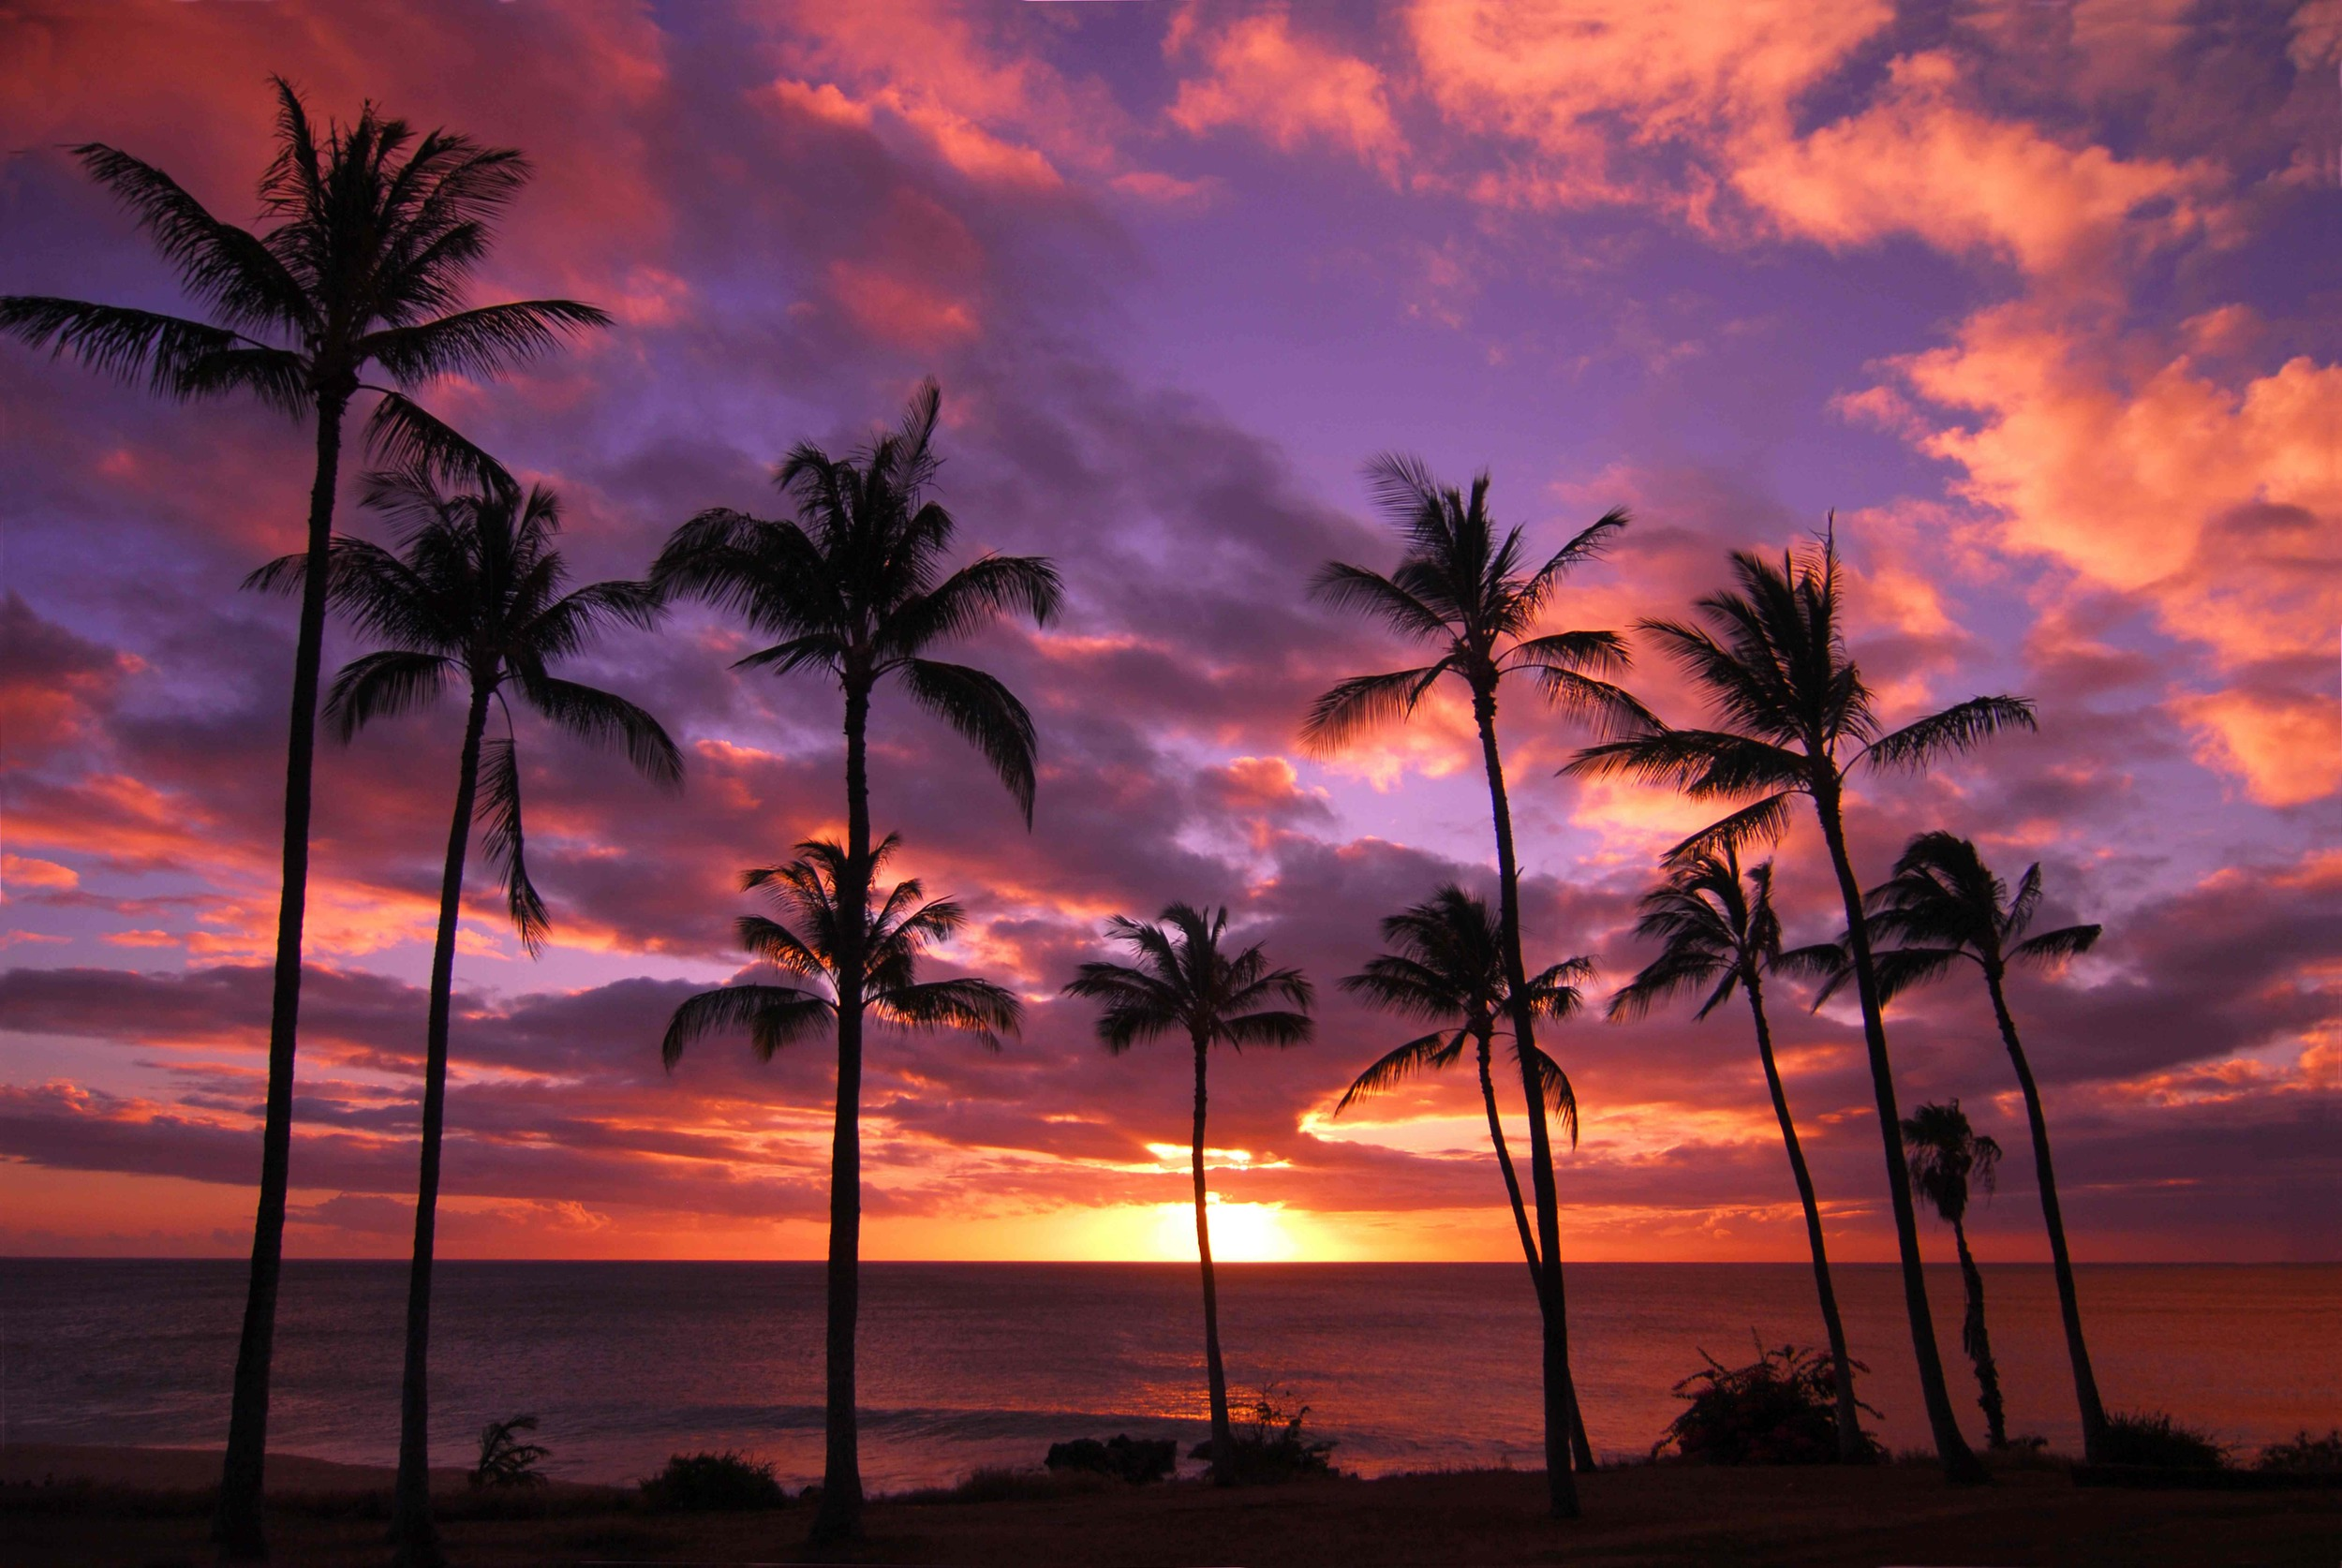 palmtree-sunset_shutterstock_reduced.jpg